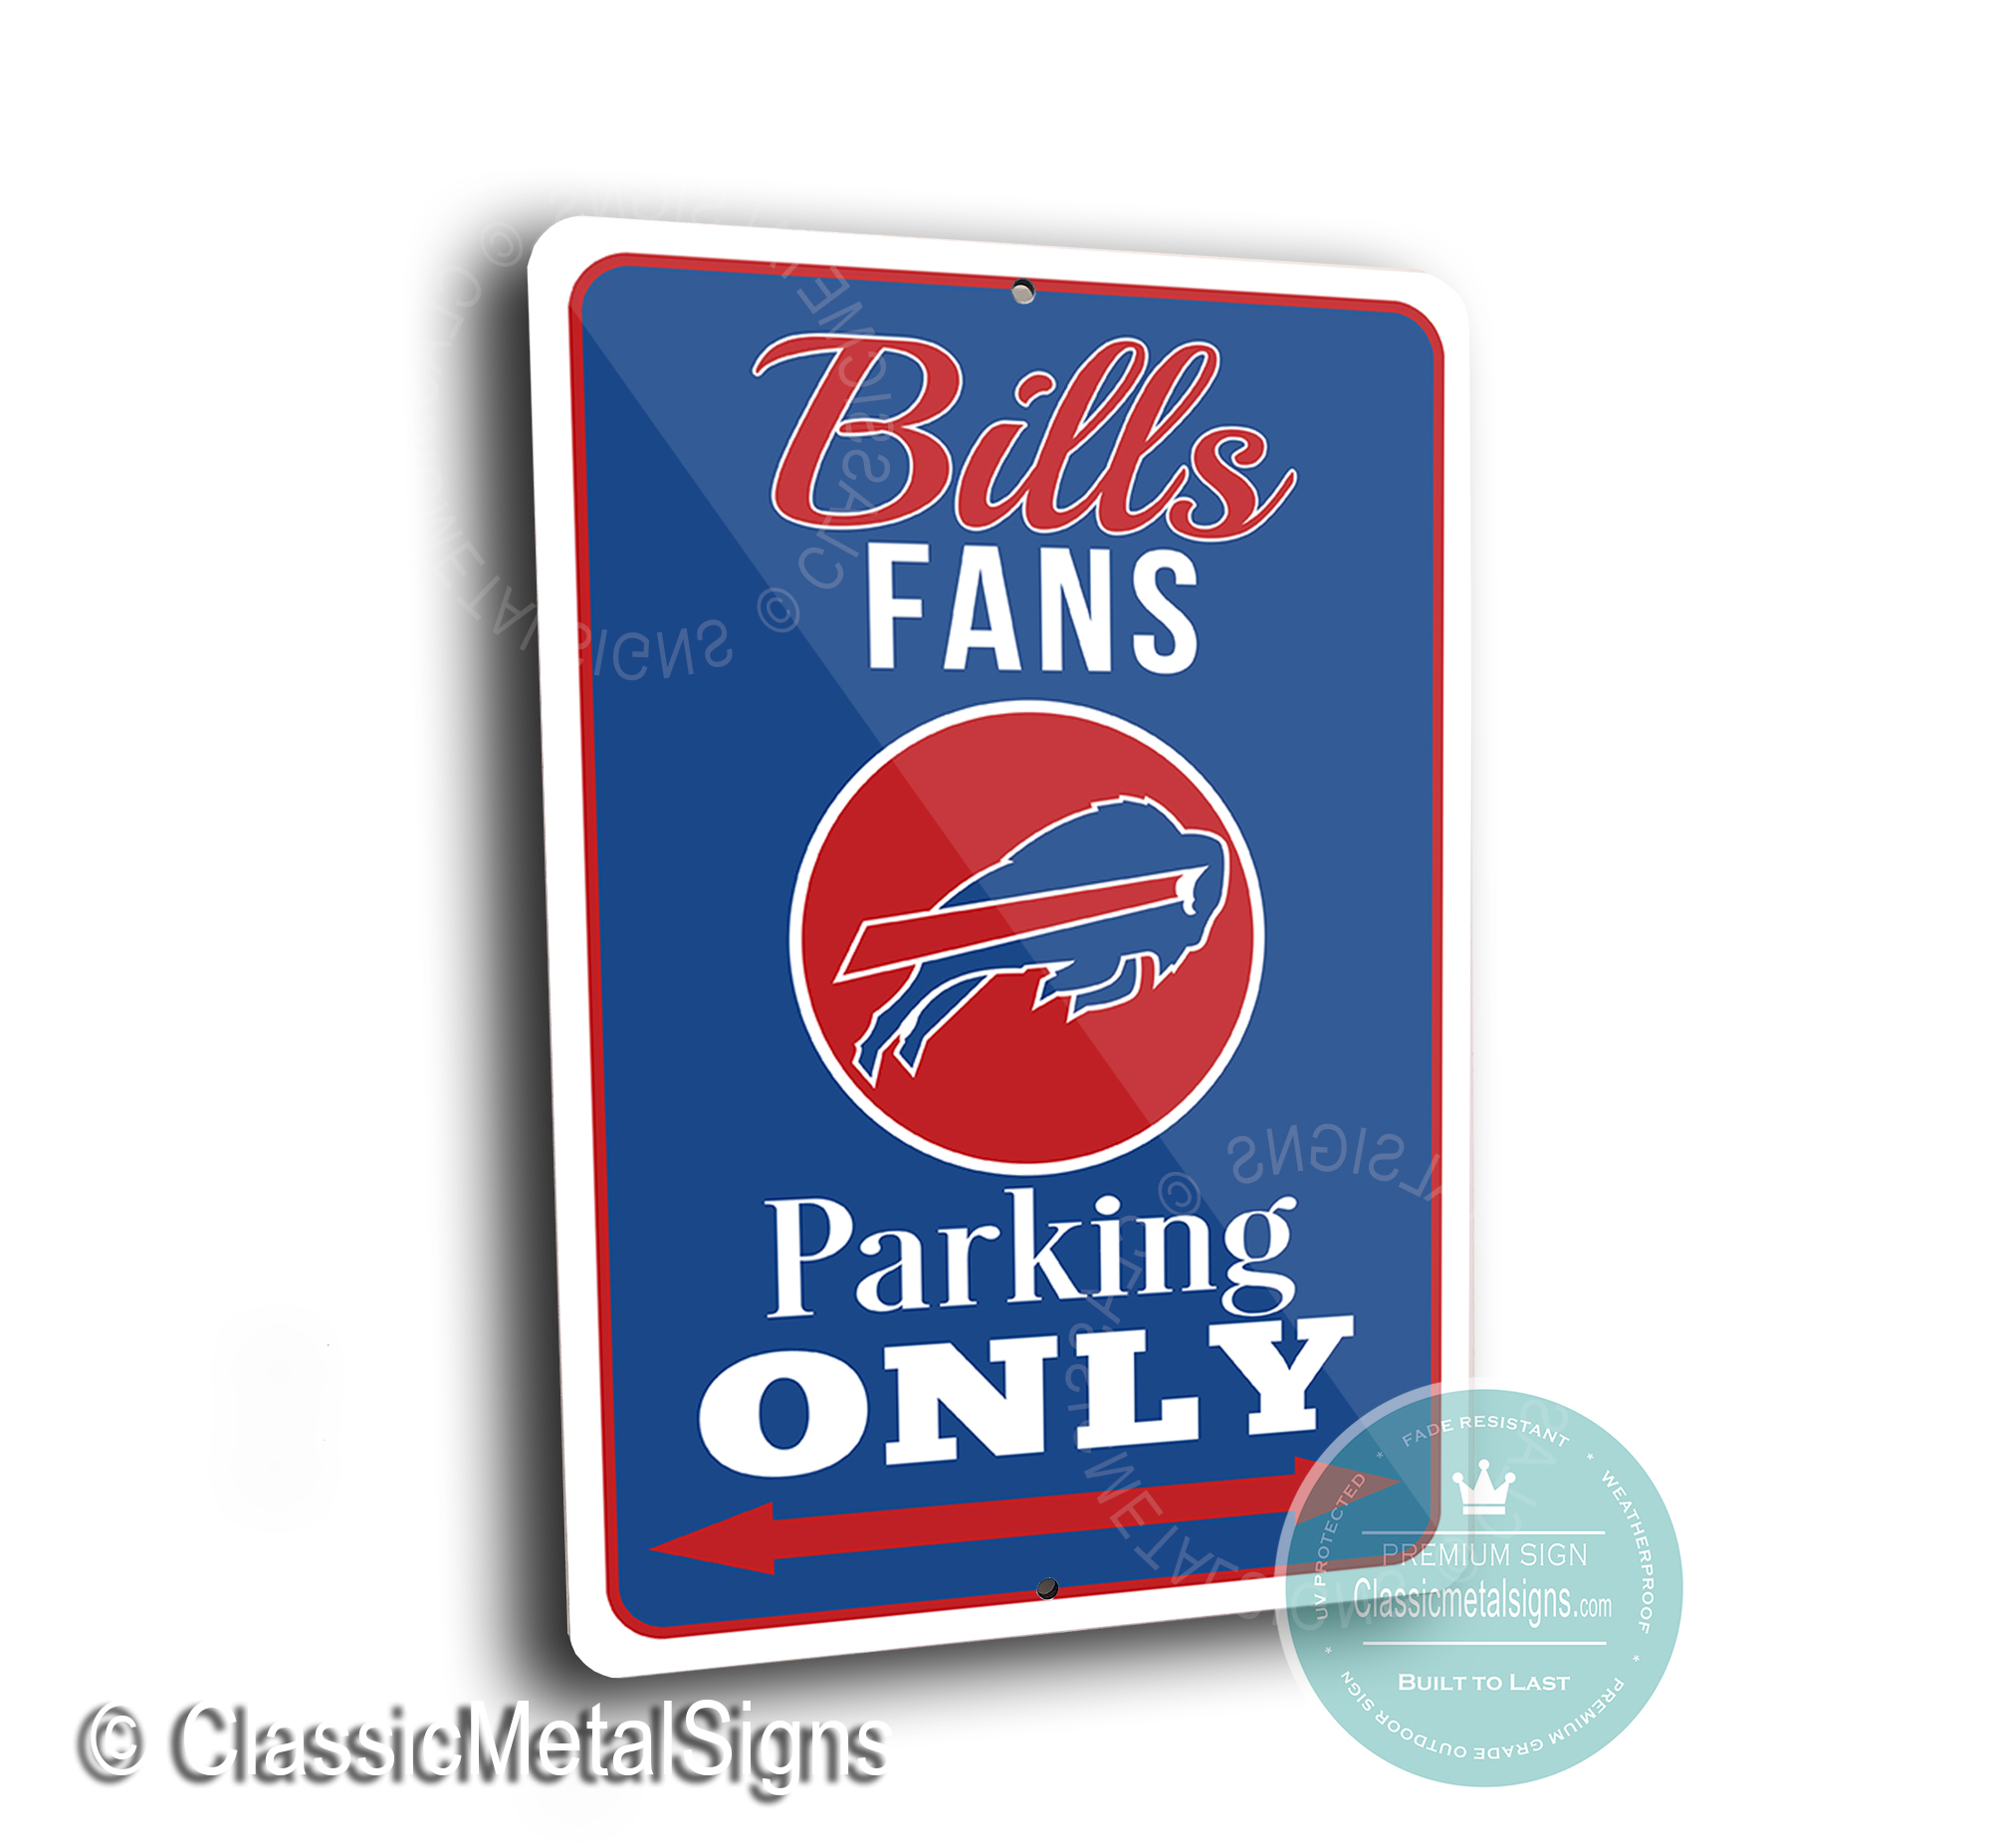 Buffalo Bills Parking Only Signs